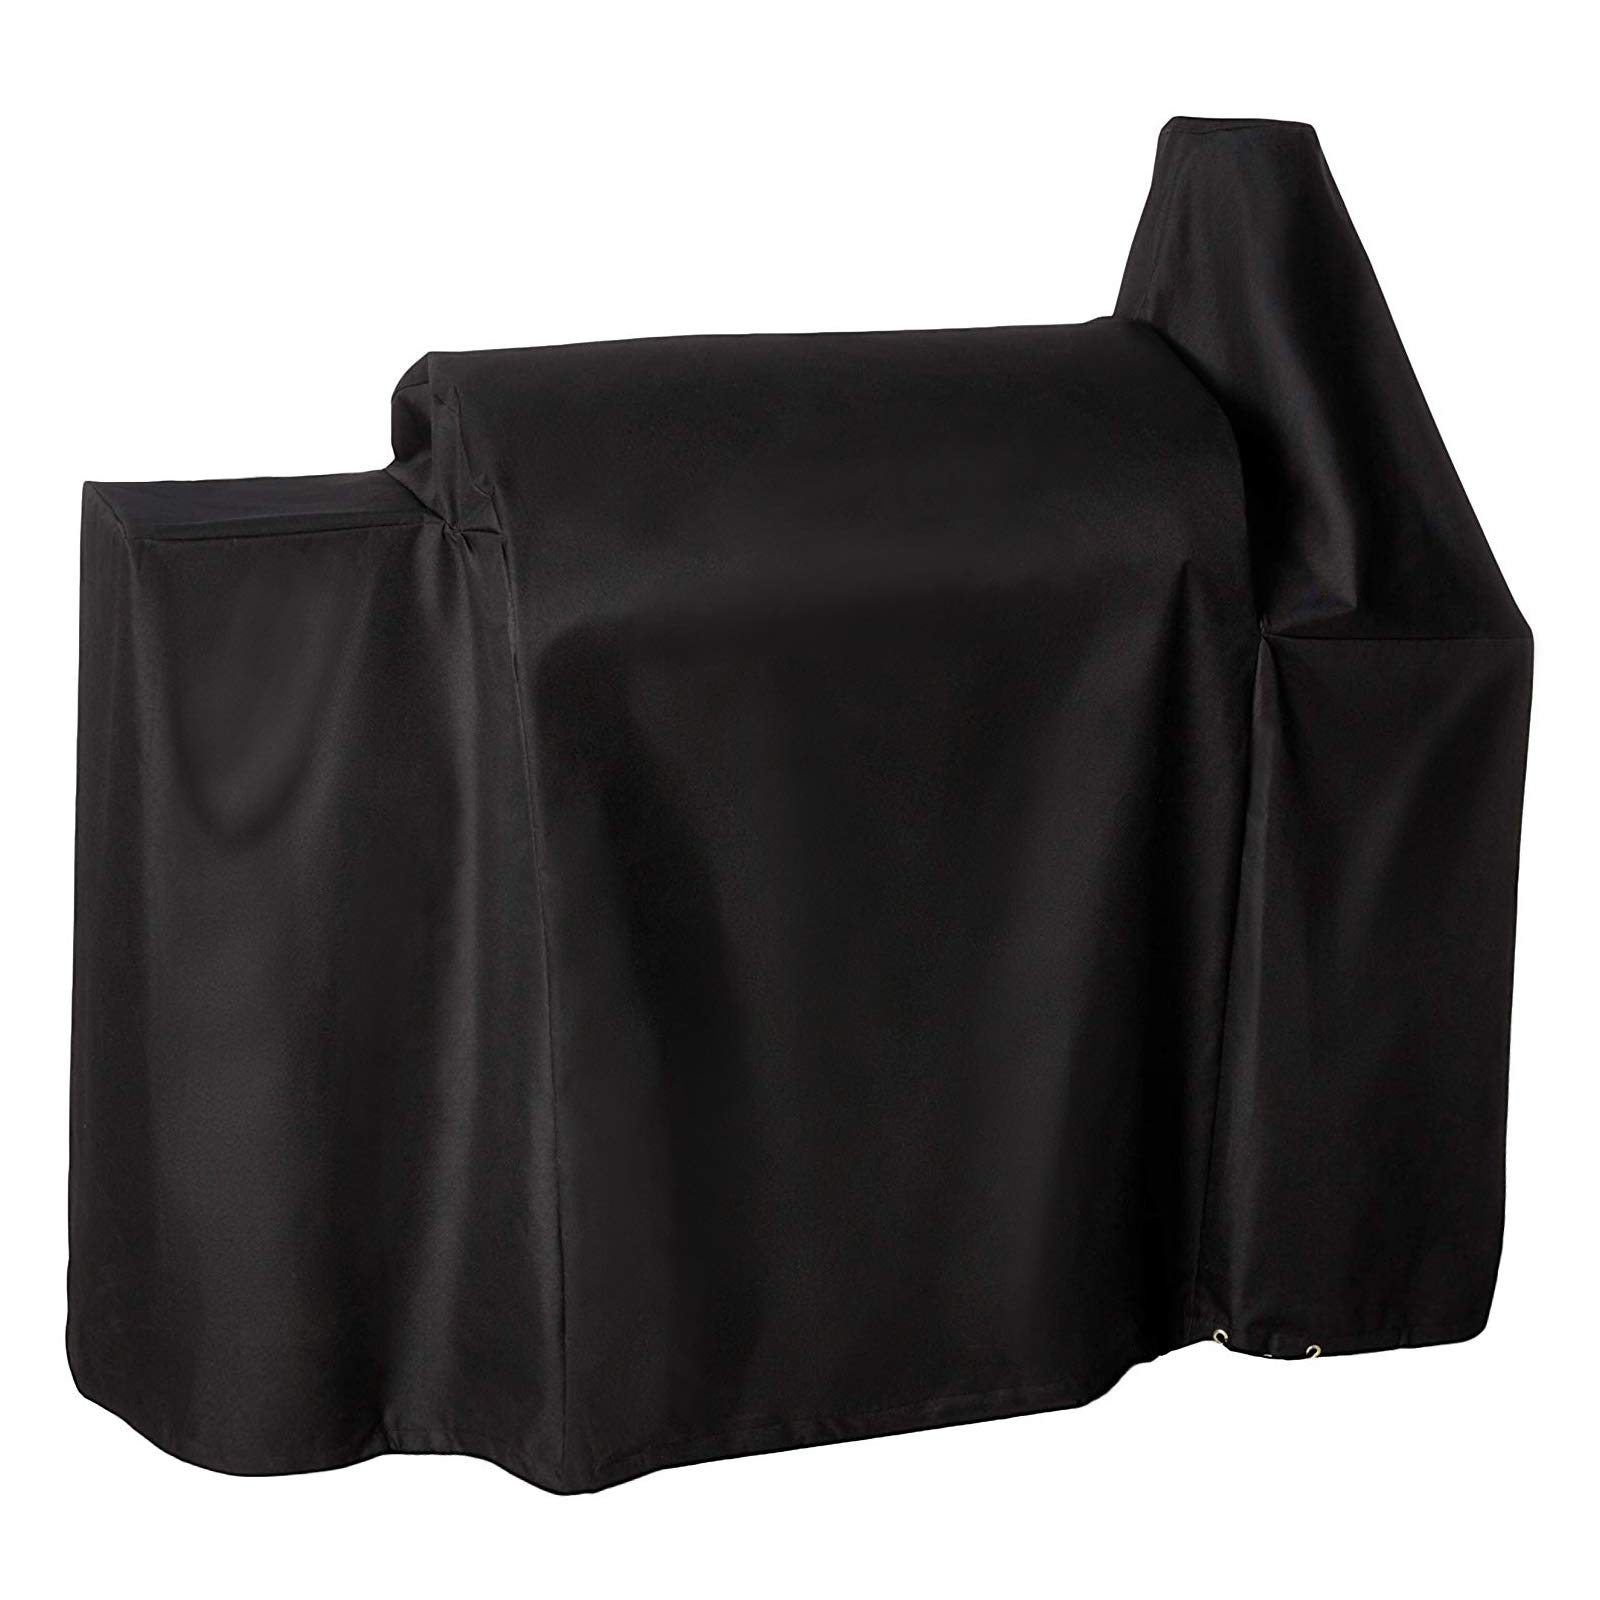 QuliMetal 73821 Grill Cover for Pit Boss 820 Deluxe/ 820D, Rancher XL/Austin XL/1000S/1100 Wood Pellet Grills with The Side Tray by QuliMetal